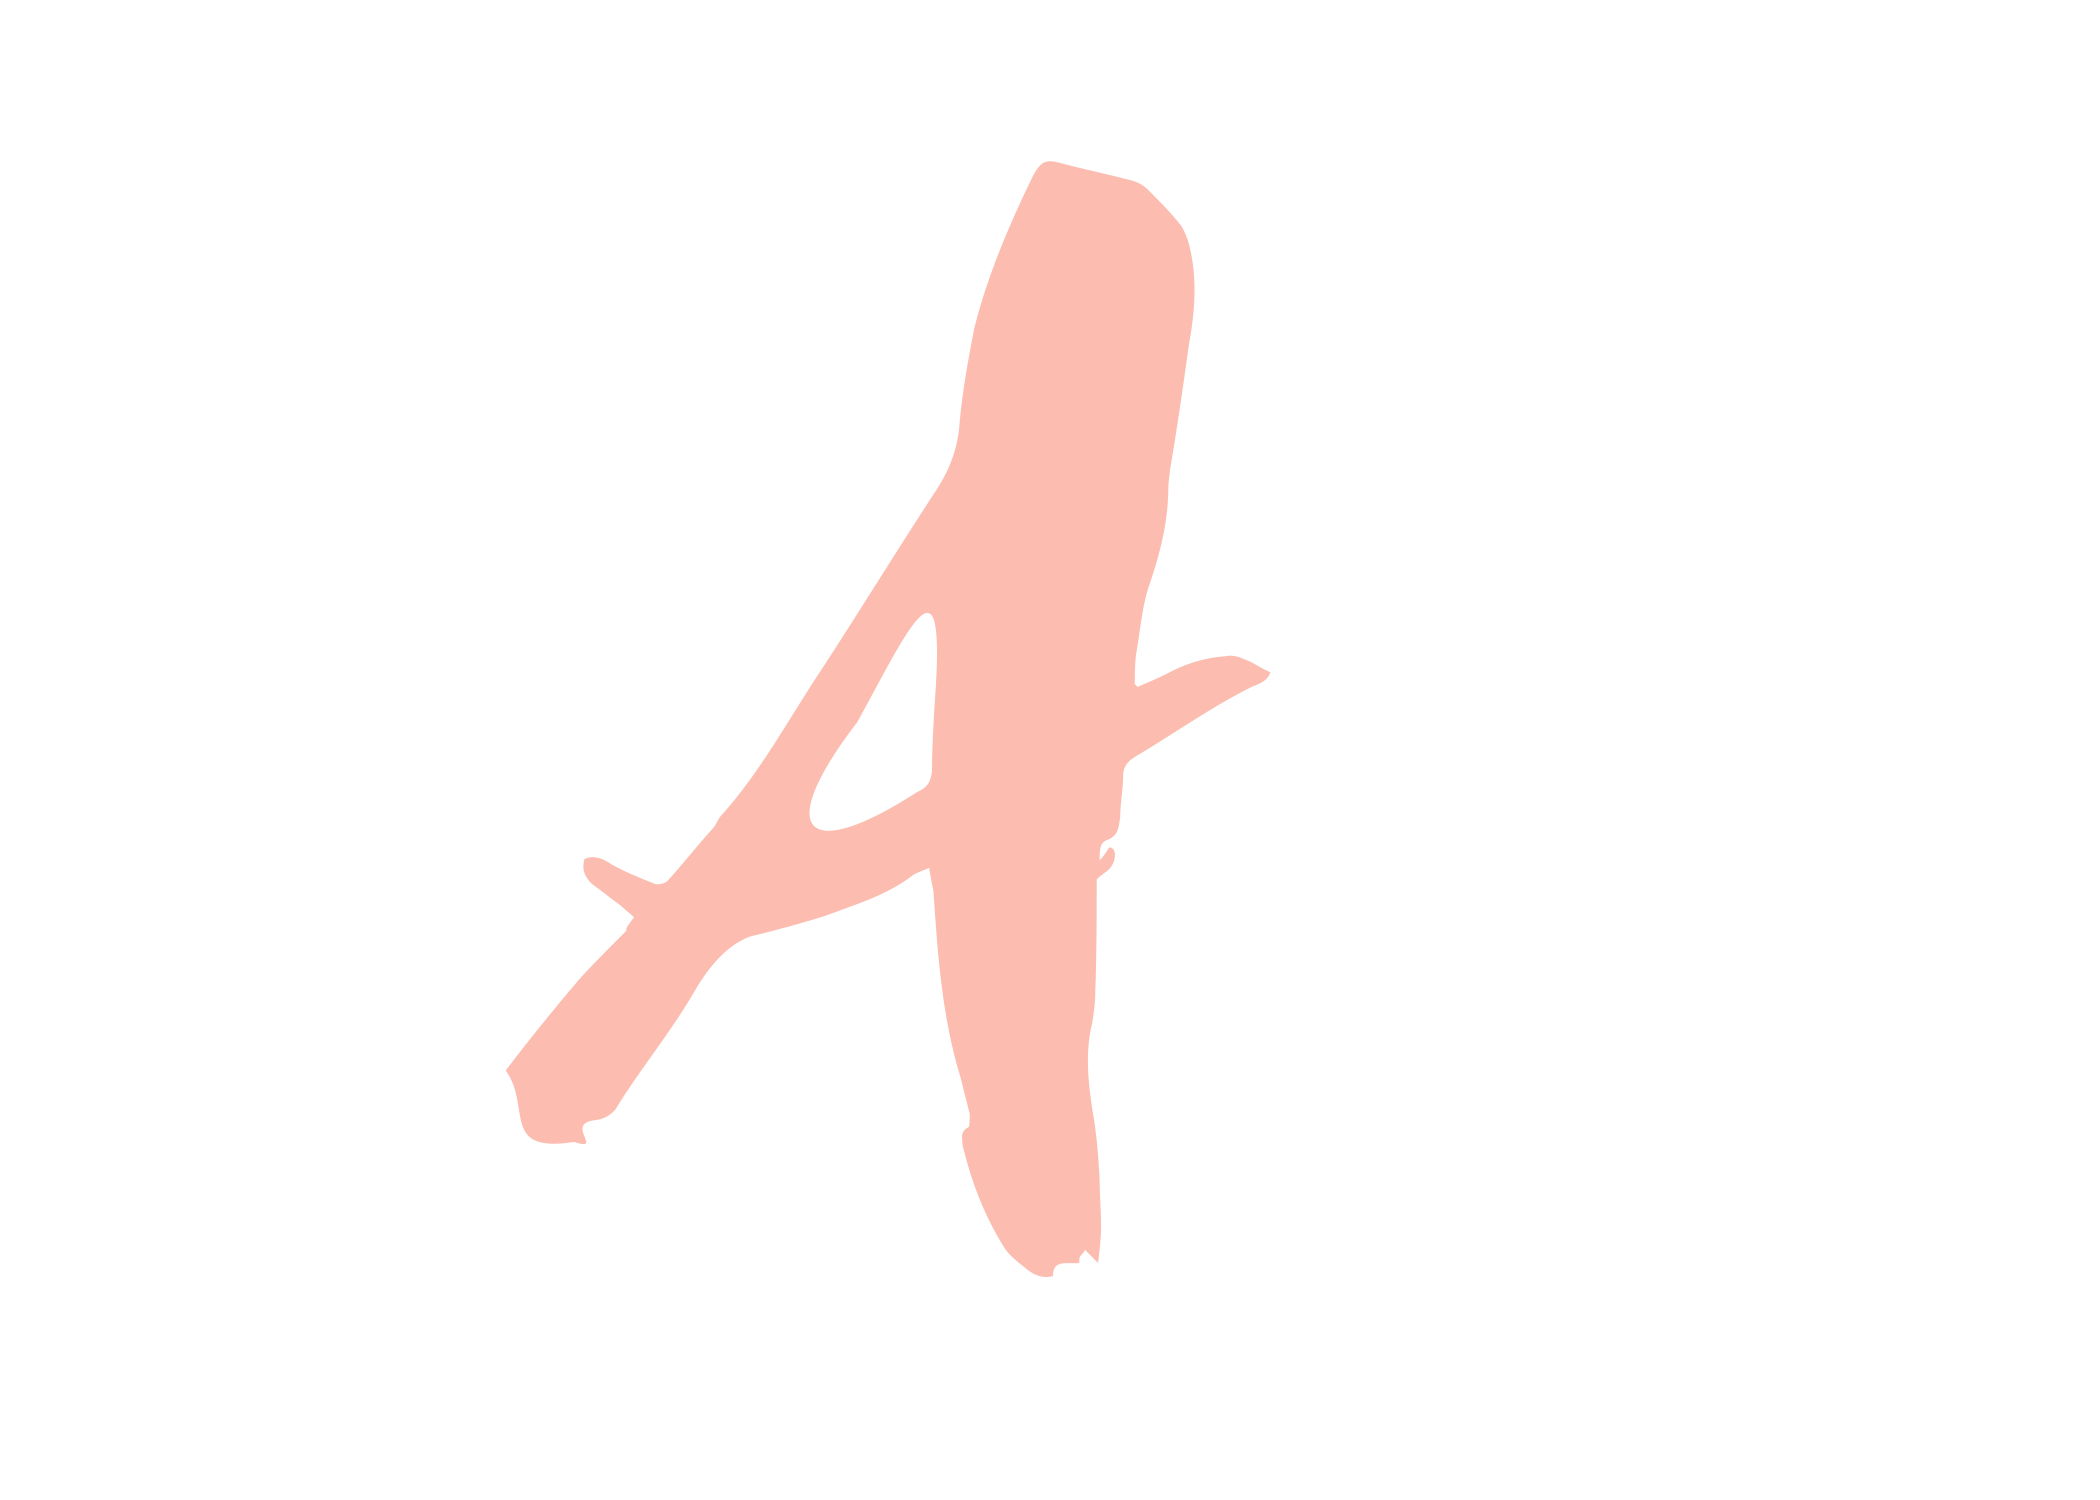 A.png